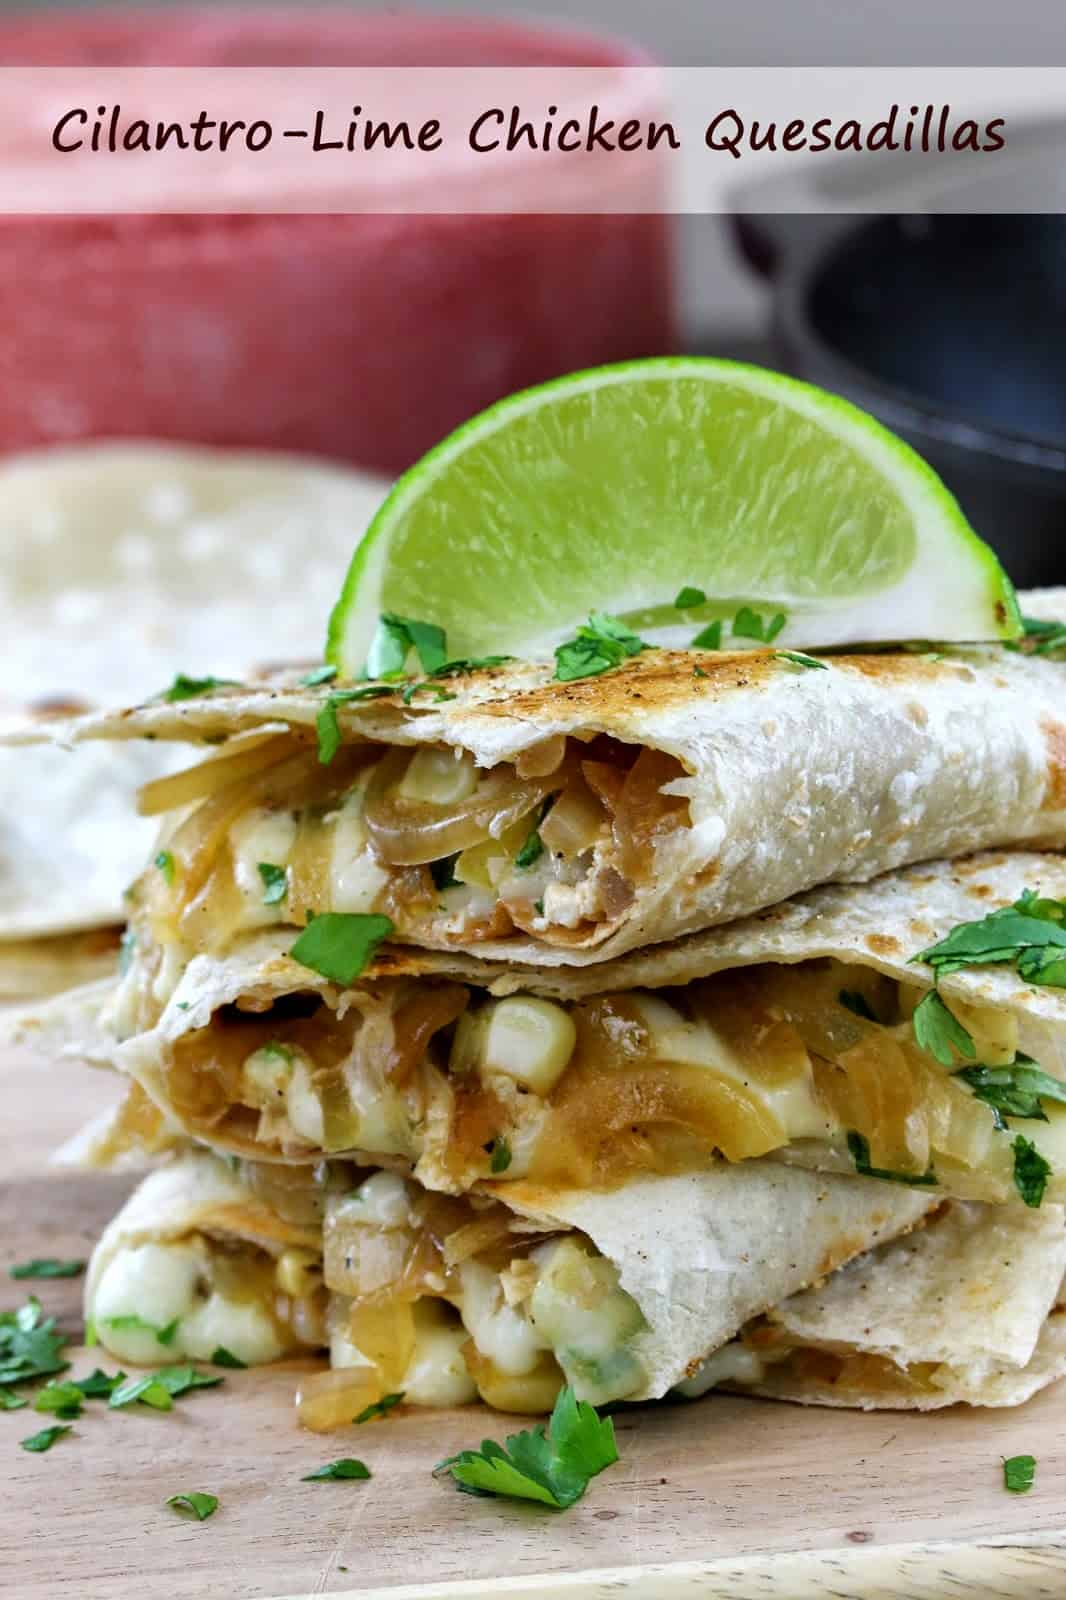 A stack of quesadillas spilling over with cheese, onions, corn and chicken and garnished with fresh cilantro and a lime wedge